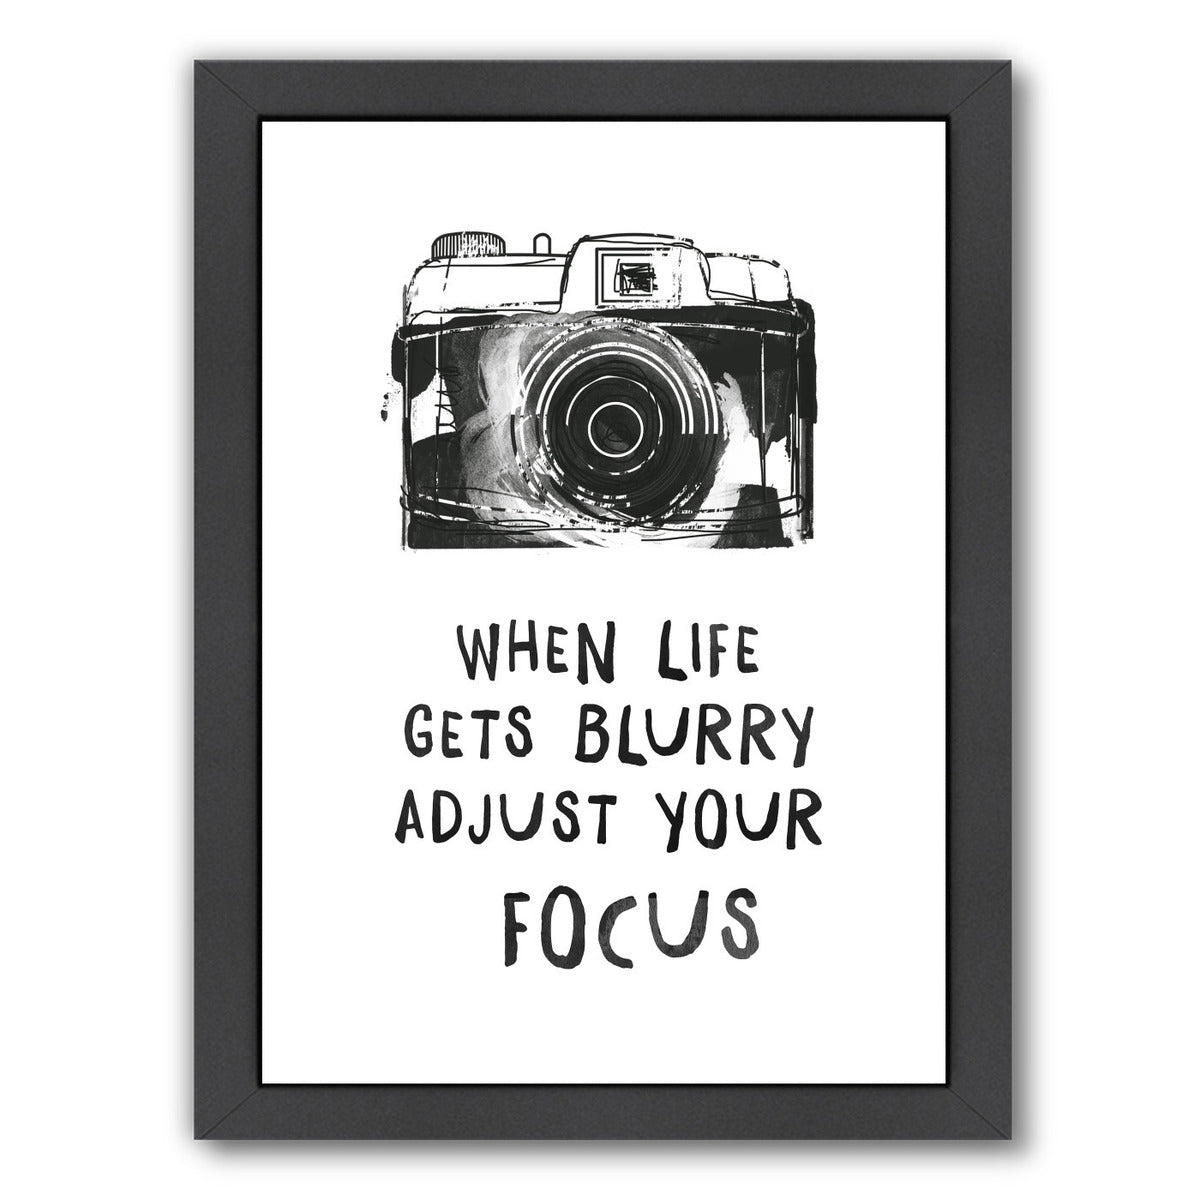 When Life Gets Blurry by Peach & Gold Framed Print - Wall Art - Americanflat